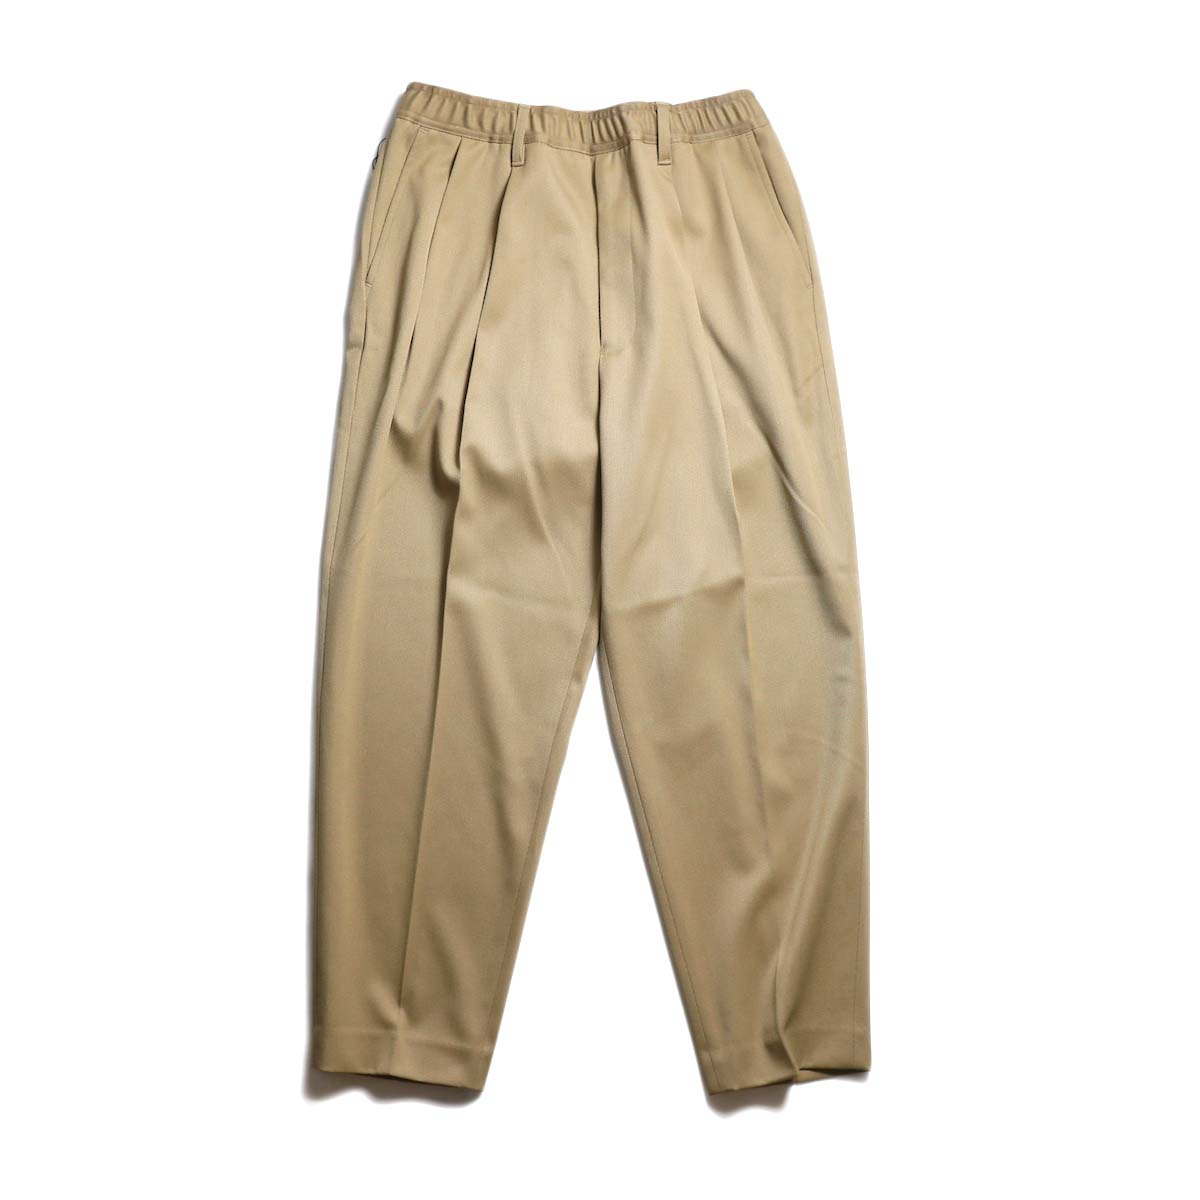 N.HOOLYWOOD / 191-PT09-056-pieces 2tuck Easy Slacks (Beige)